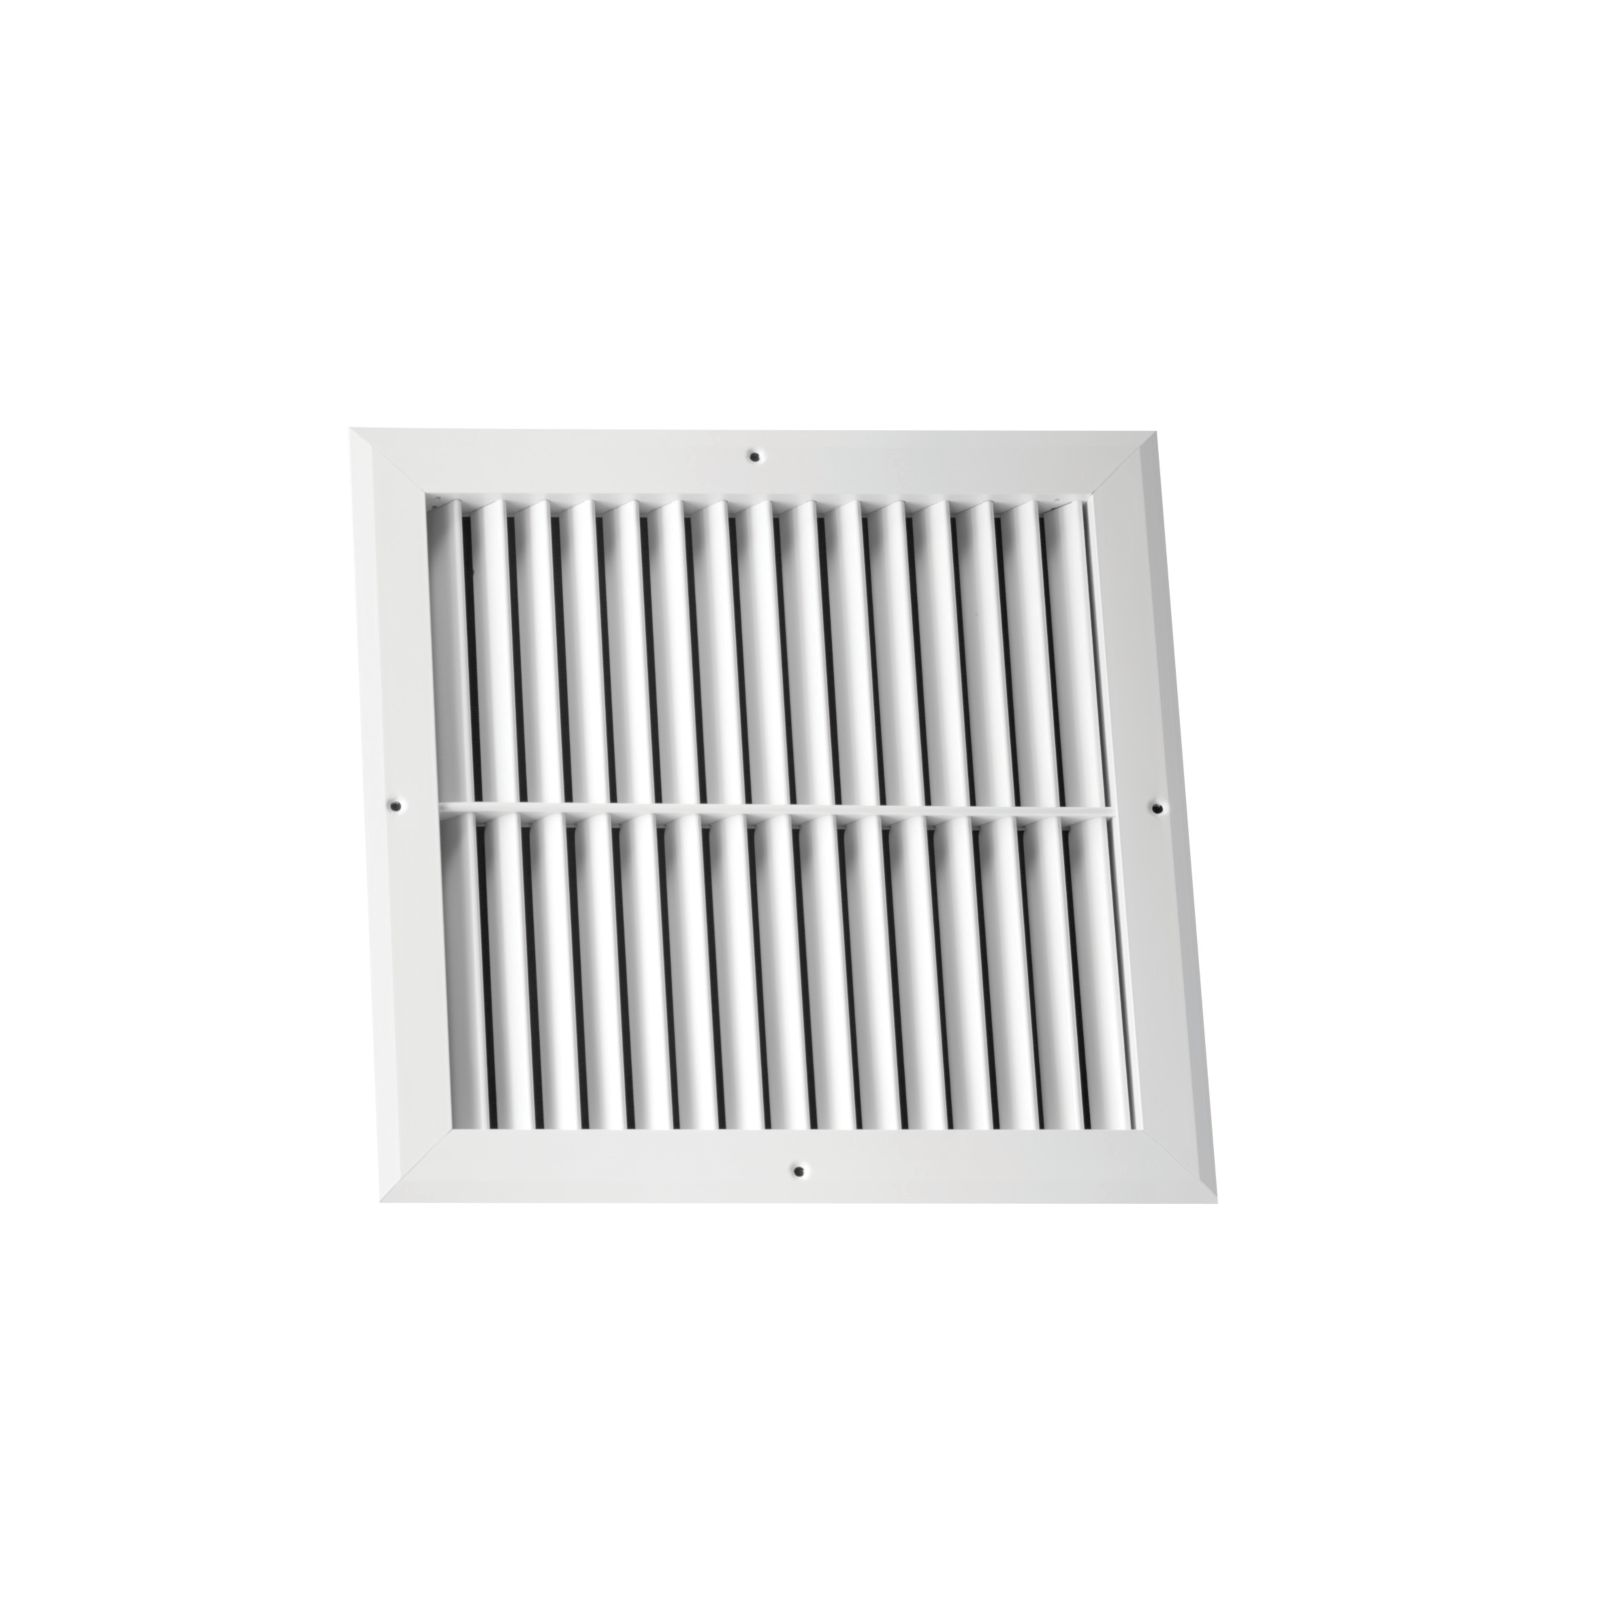 "Hart & Cooley 064044 - Aluminum Return Air Grille, 45-Degree Fixed Blade, White Finish, 20"" X 12"""